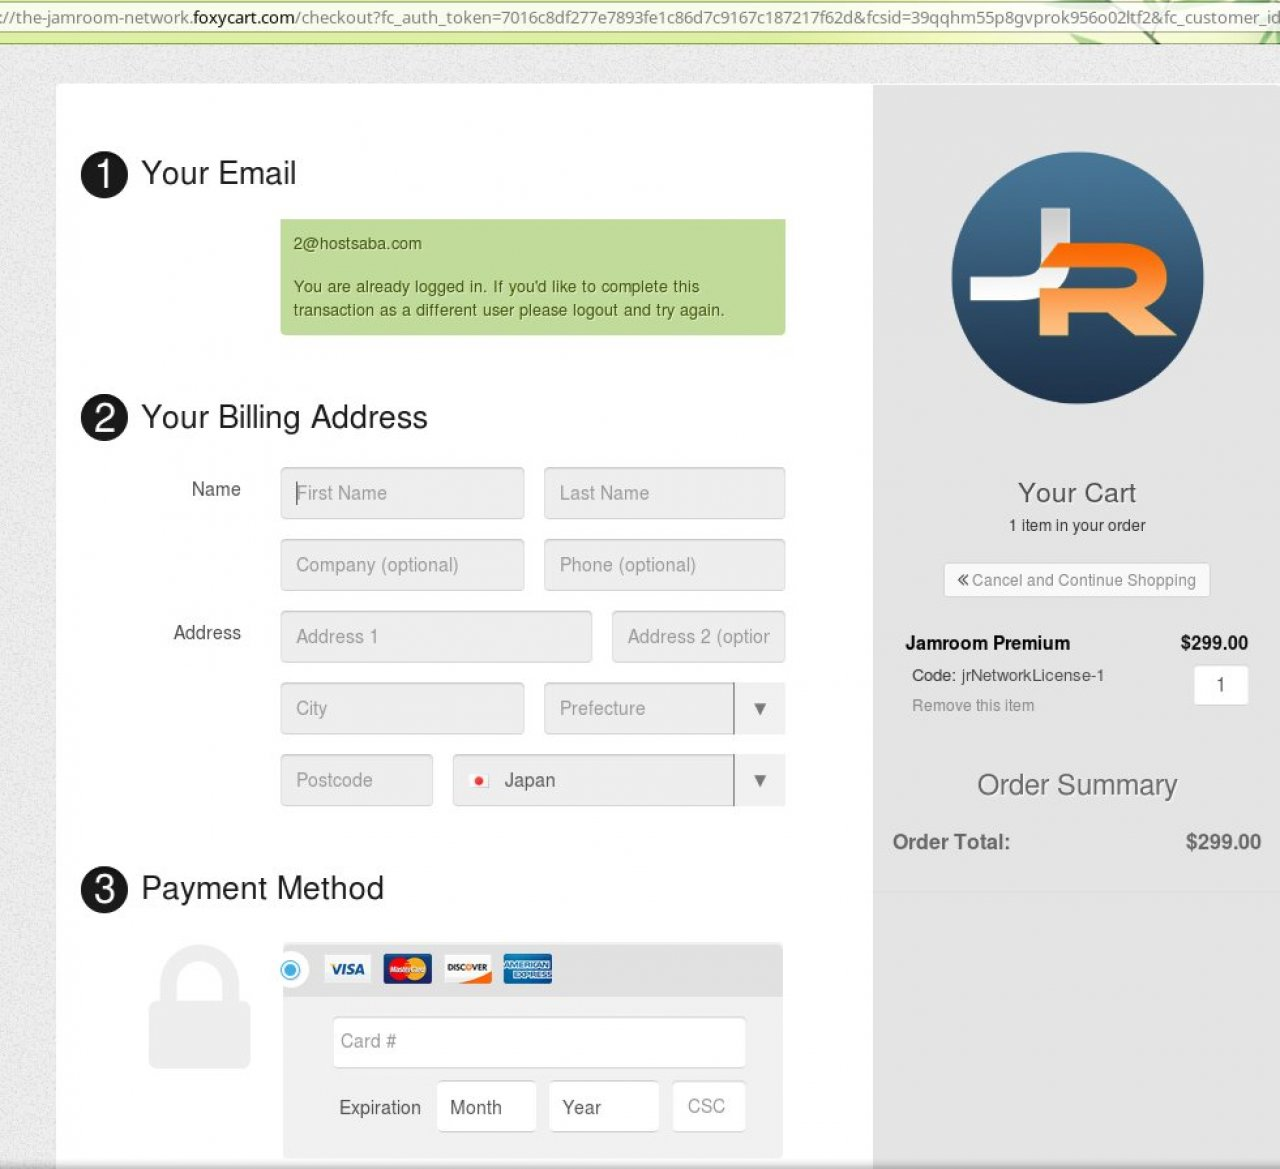 Checkout details page is shown